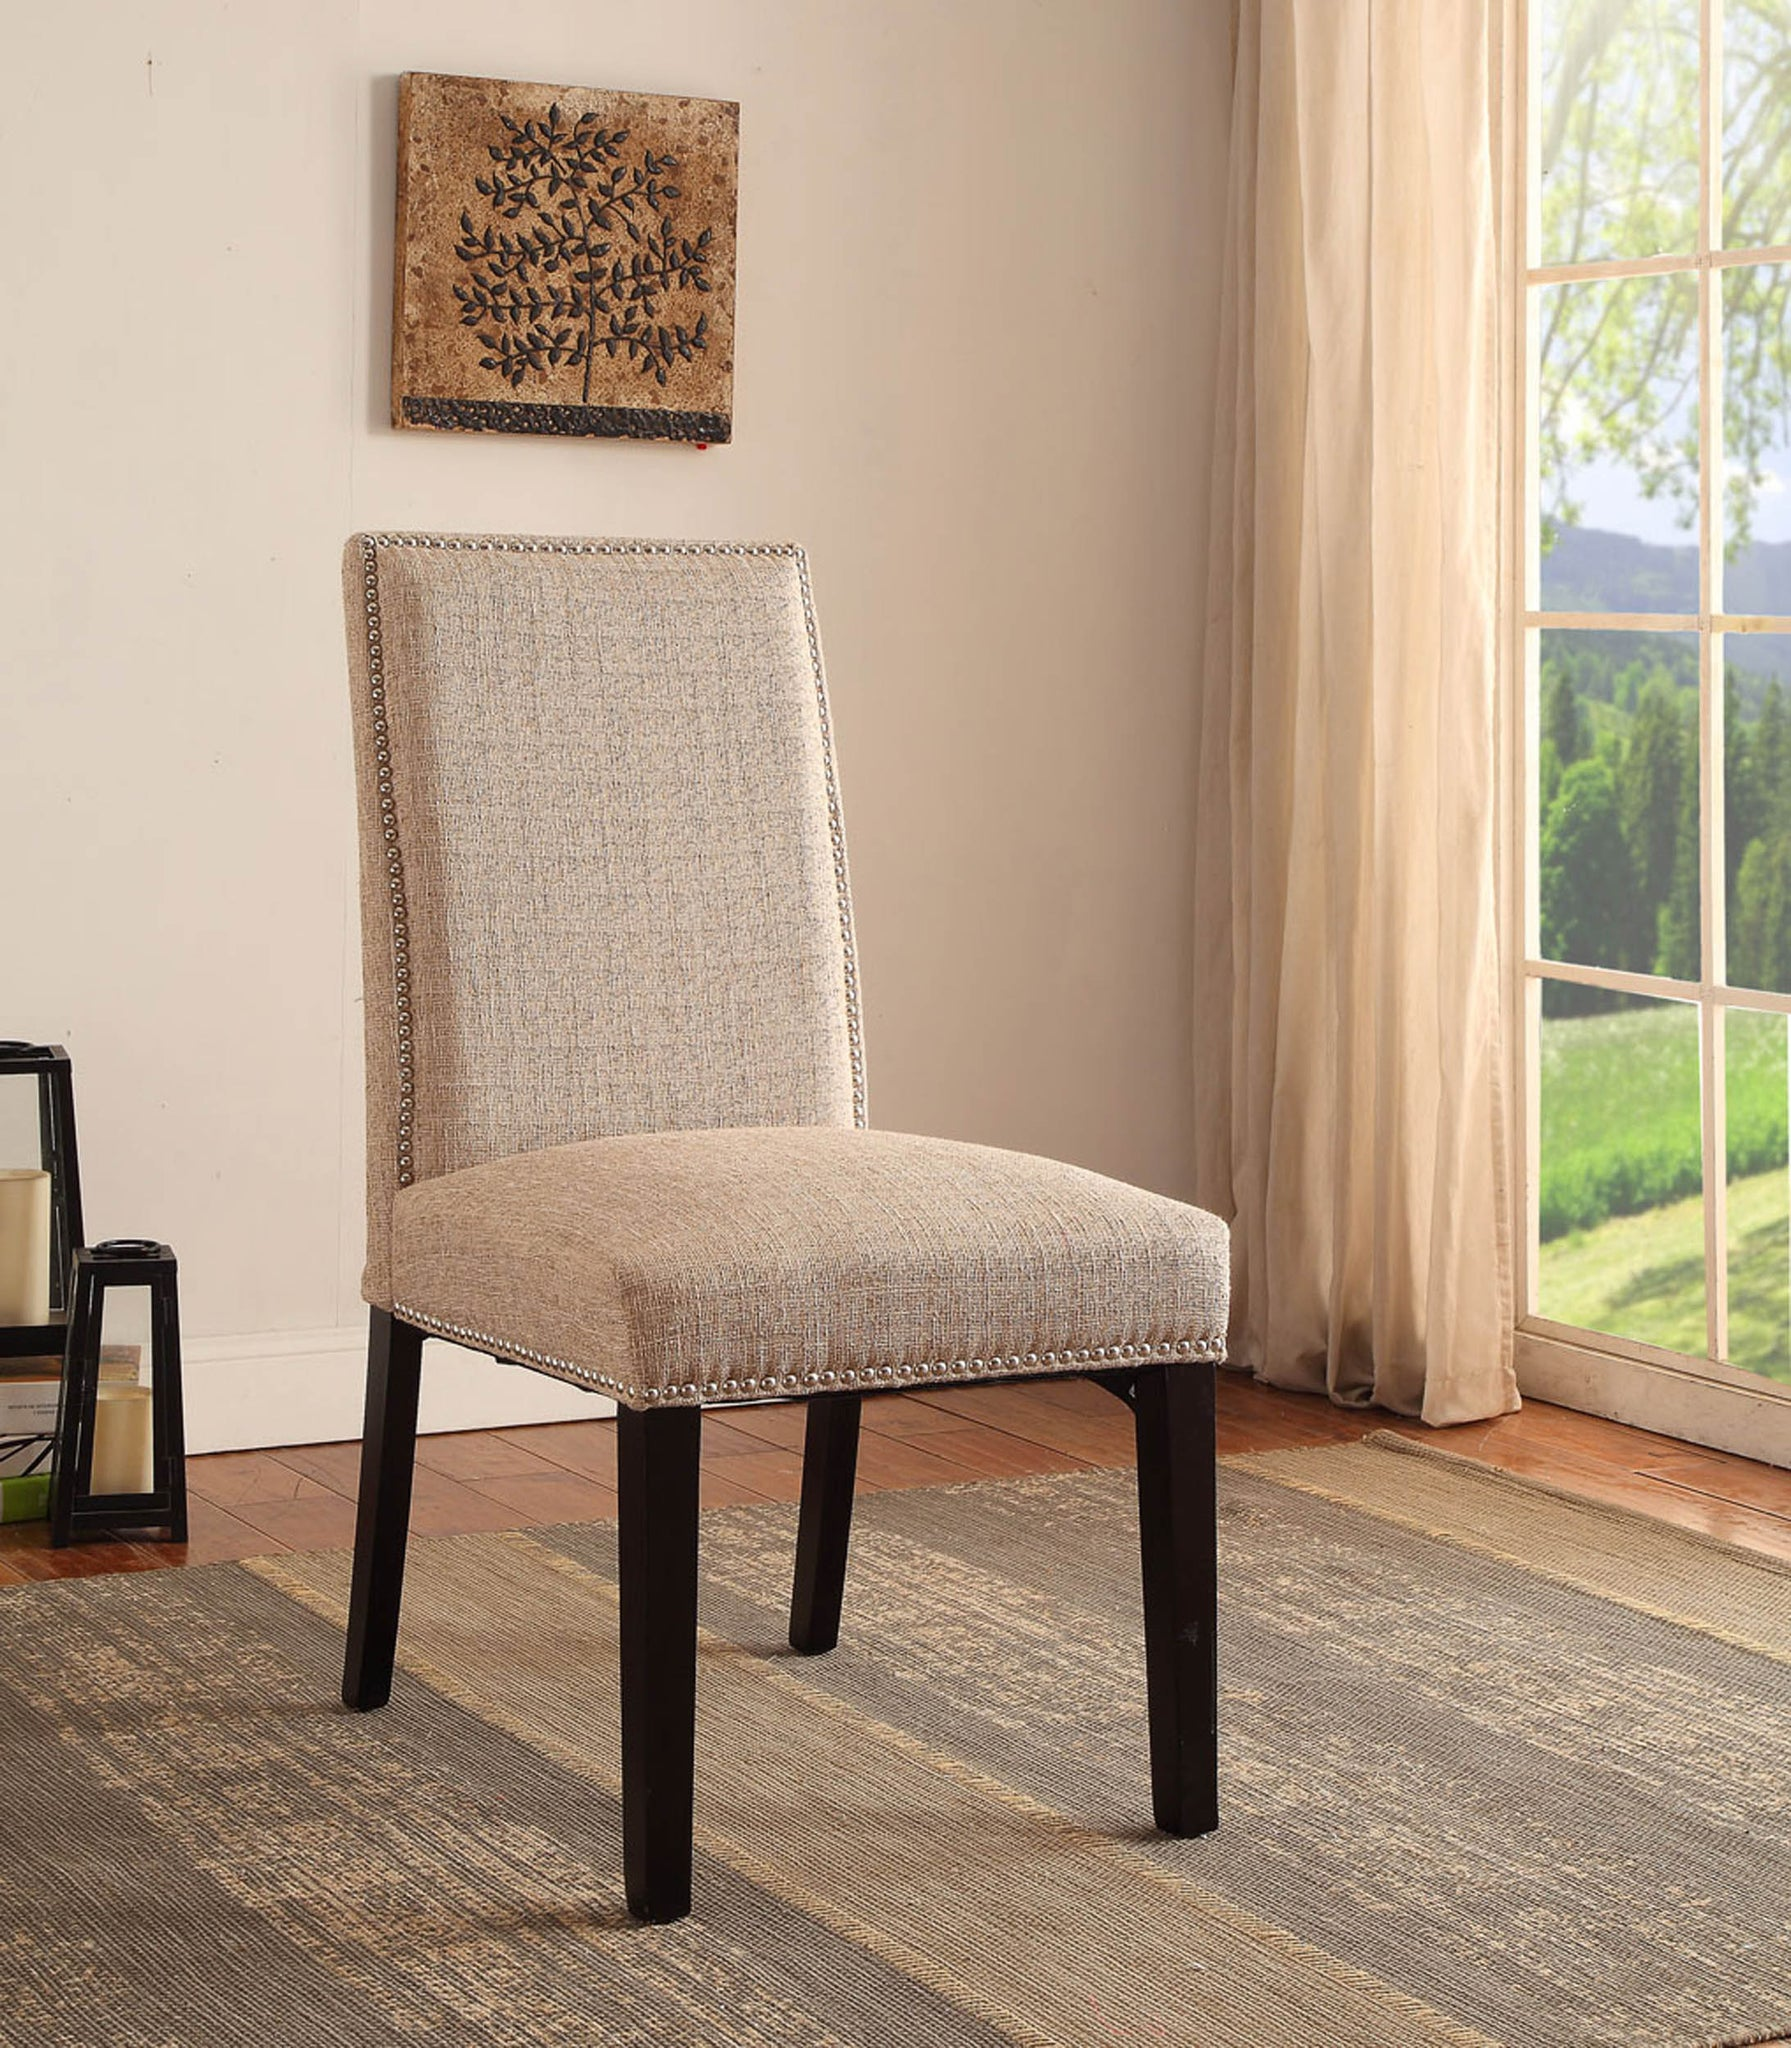 guilty by upholstery pleasures zoom dining koket big luxury chair anastasia parson